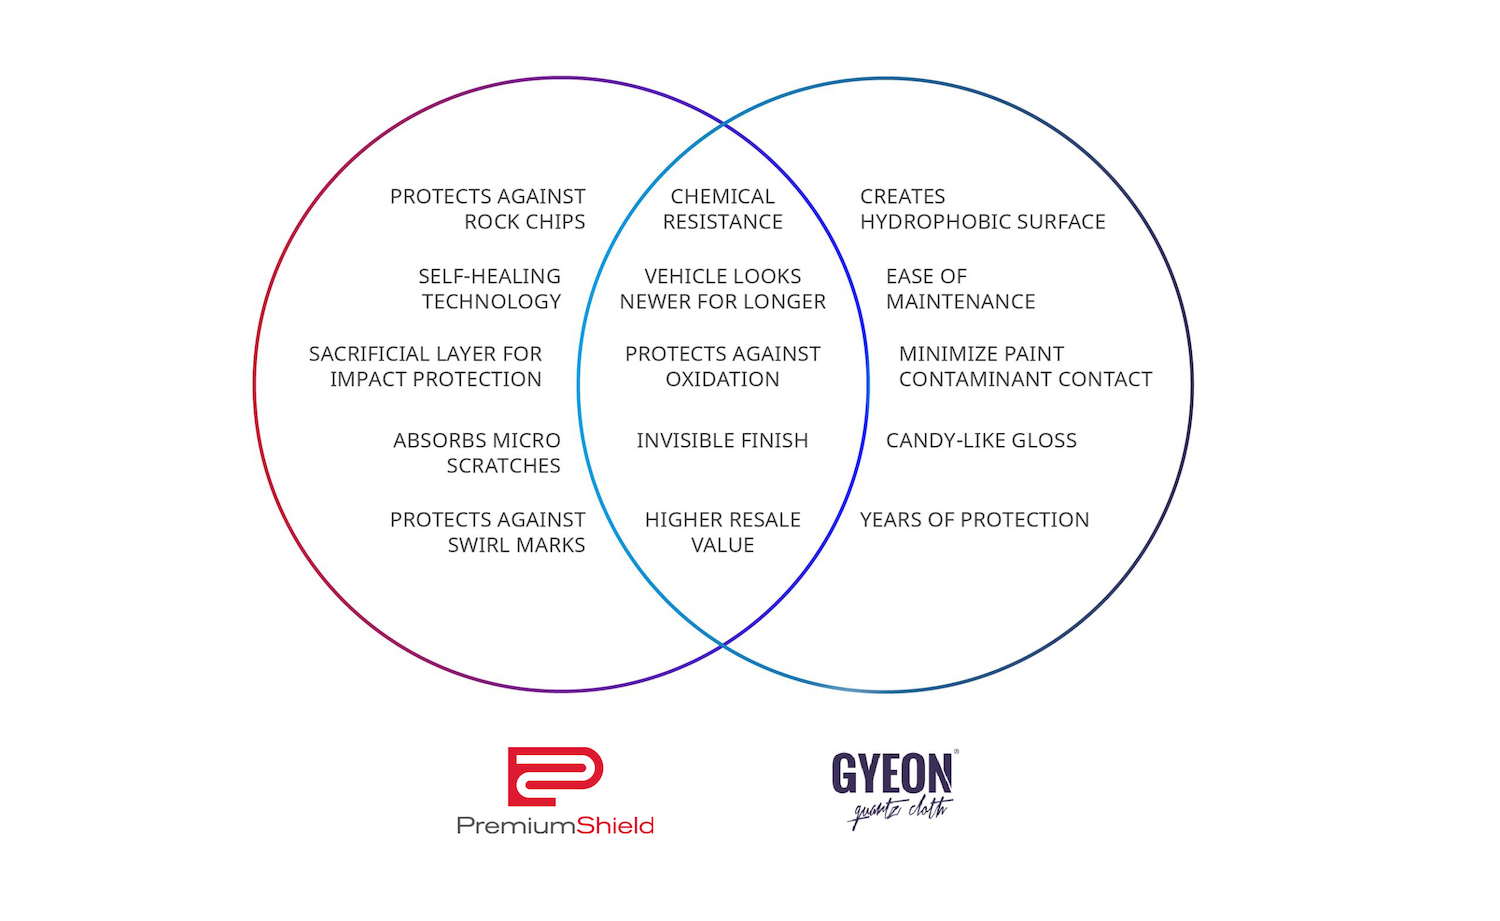 Venn Diagram Showing Overlapping Benefits Of Premium Shield Paint Protection Film And Gyeon Ceramic Coatings